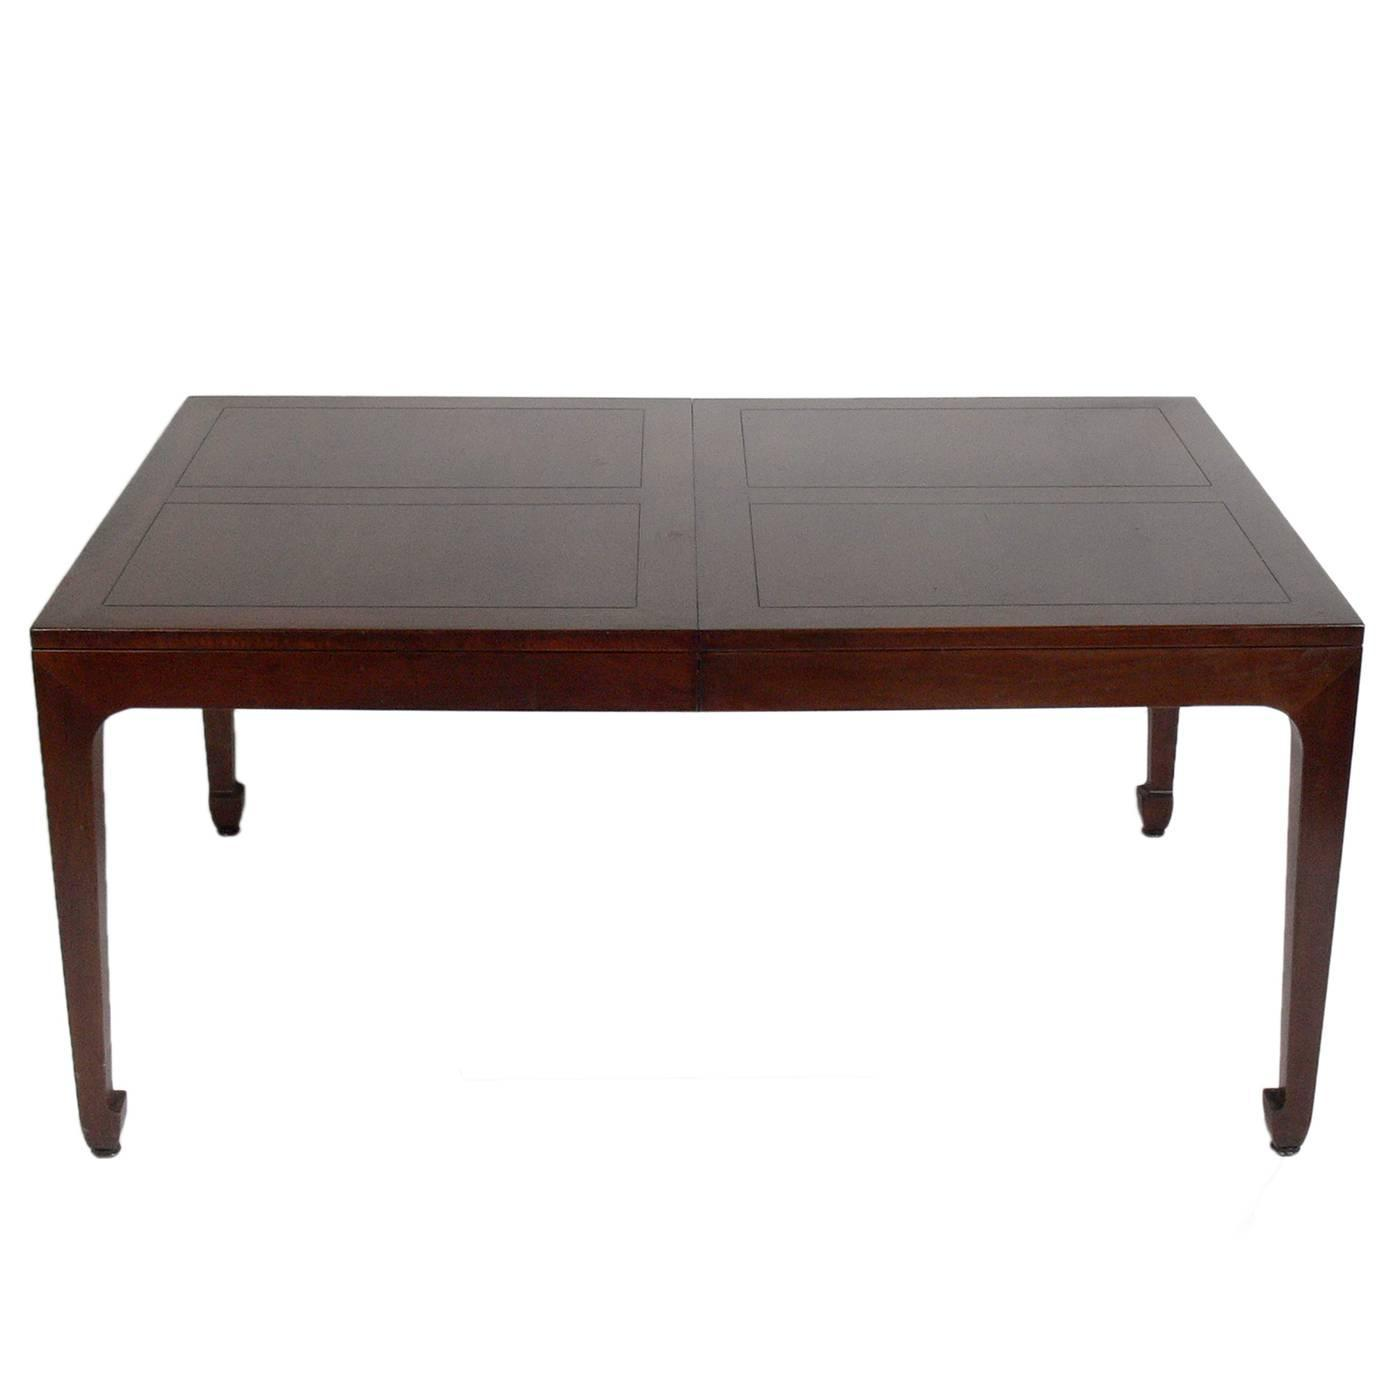 Japanese Dining Table For Sale Asian Influenced Dining Table By Michael Taylor For Baker